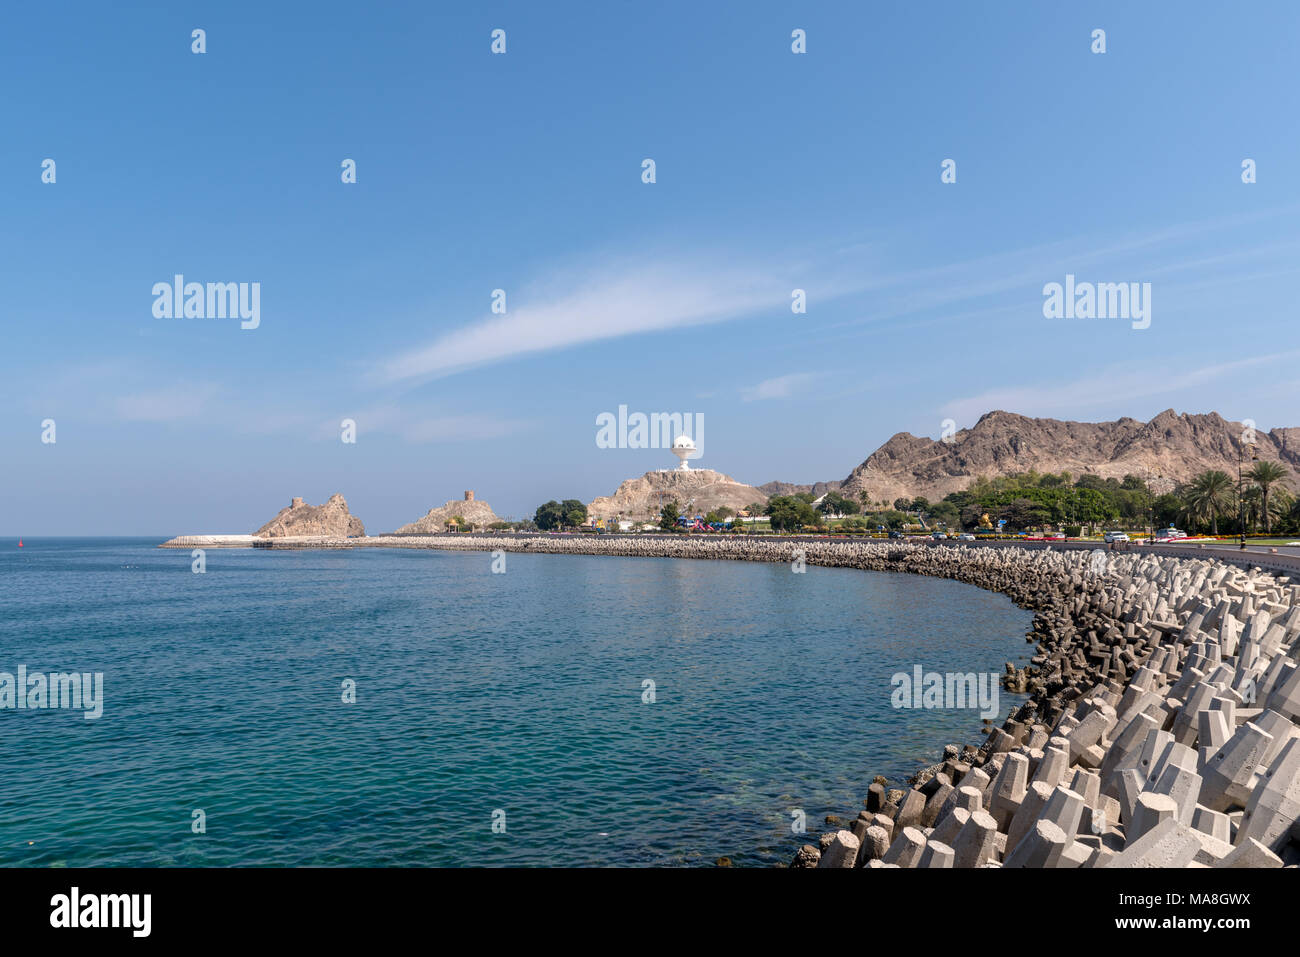 Coastline of Mutrah (old Muscat) in Oman with Riyam park, old watchtowers and breakwater visible - Stock Image